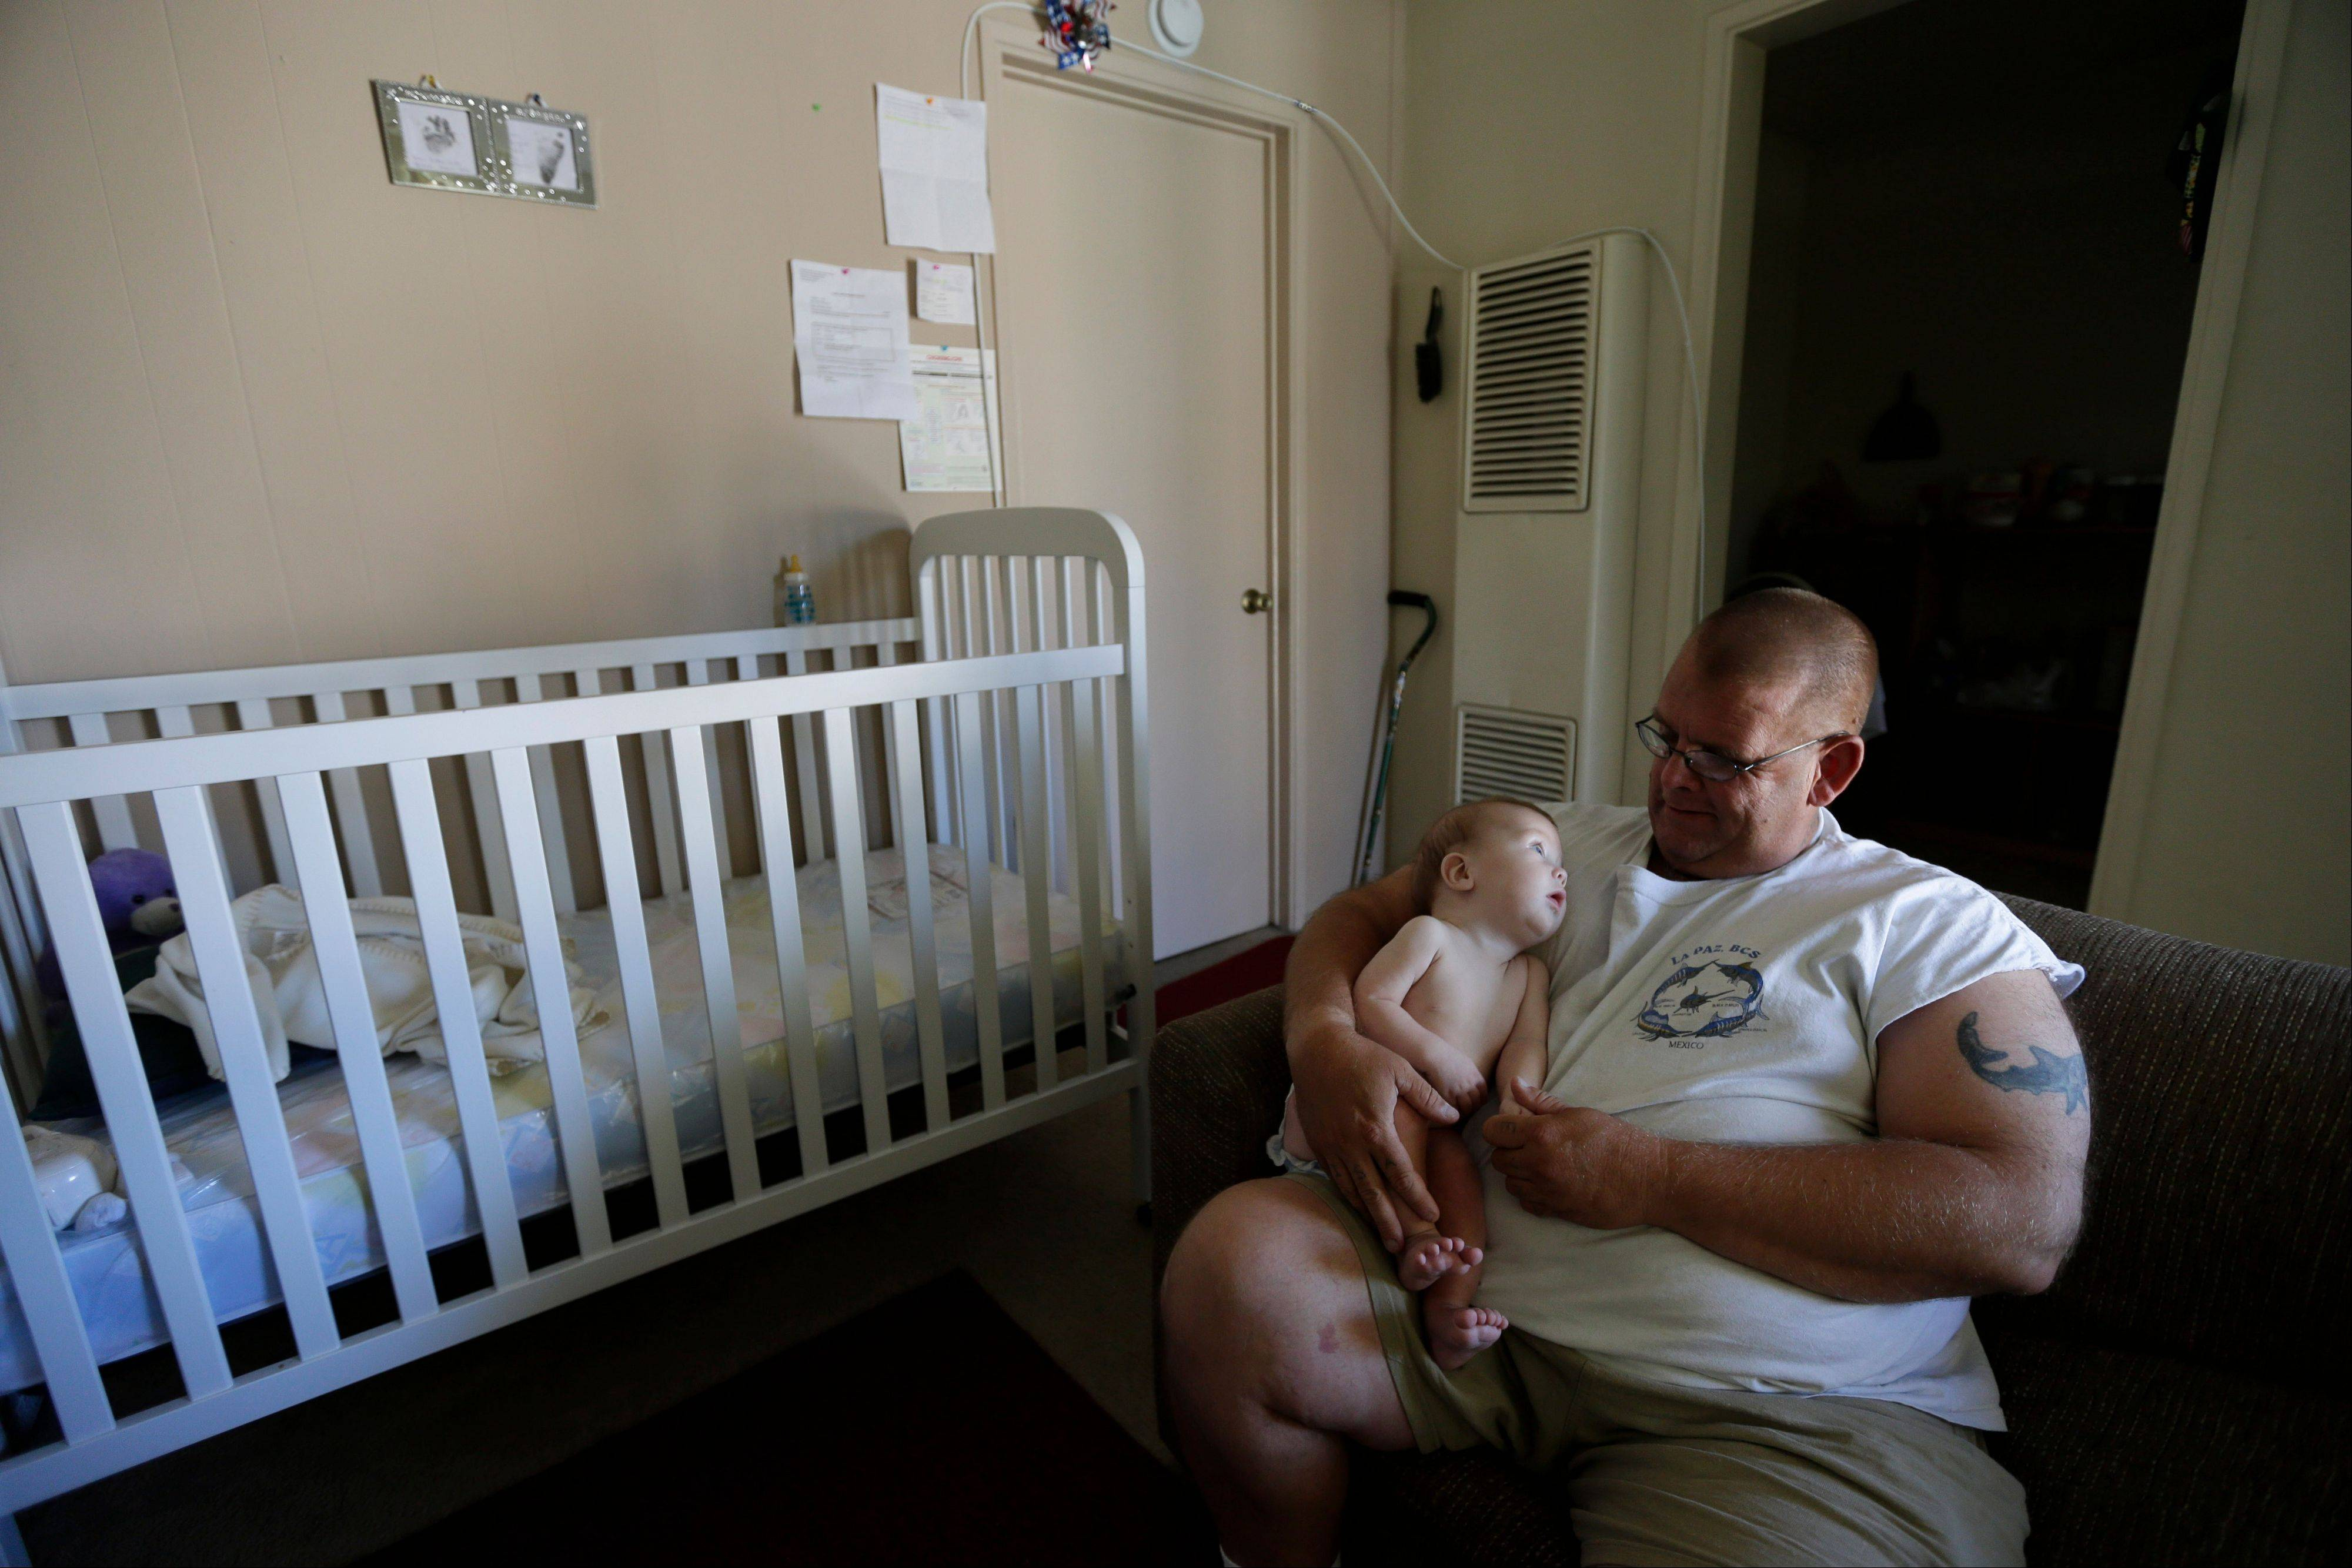 In this Oct. 9, 2012 picture, veteran Arthur Lute holds his is 5-month-old son Evan in his one-bedroom apartment in Chula Vista, Calif. Lute's arduous journey from his days as a U.S. Marine to his nights sleeping on the streets illustrates the challenge the Obama administration faces to make good on its audacious promise: End homelessness among veterans by 2015.